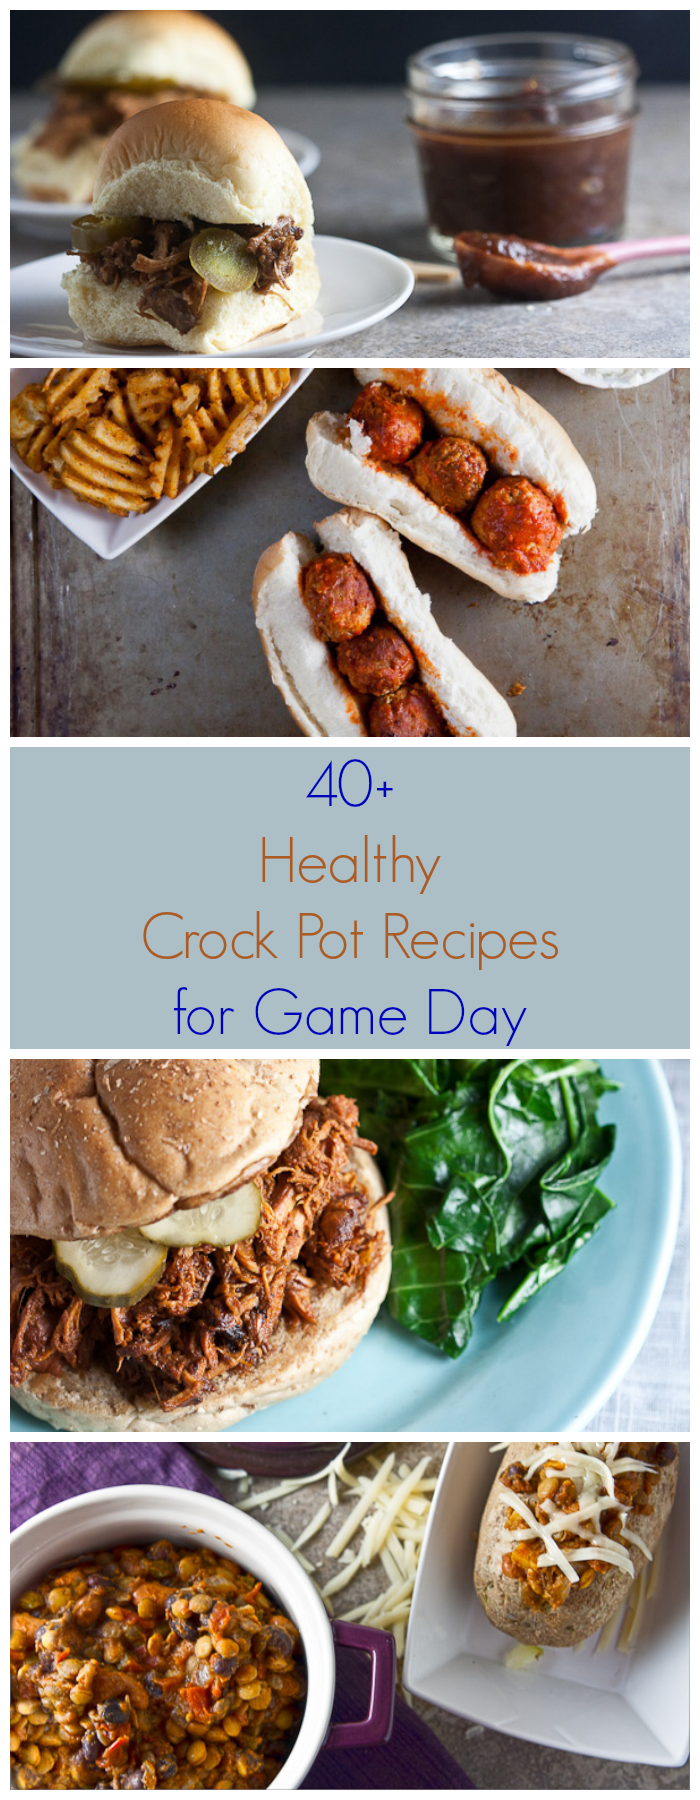 40 healthy crock pot recipes for game day.png